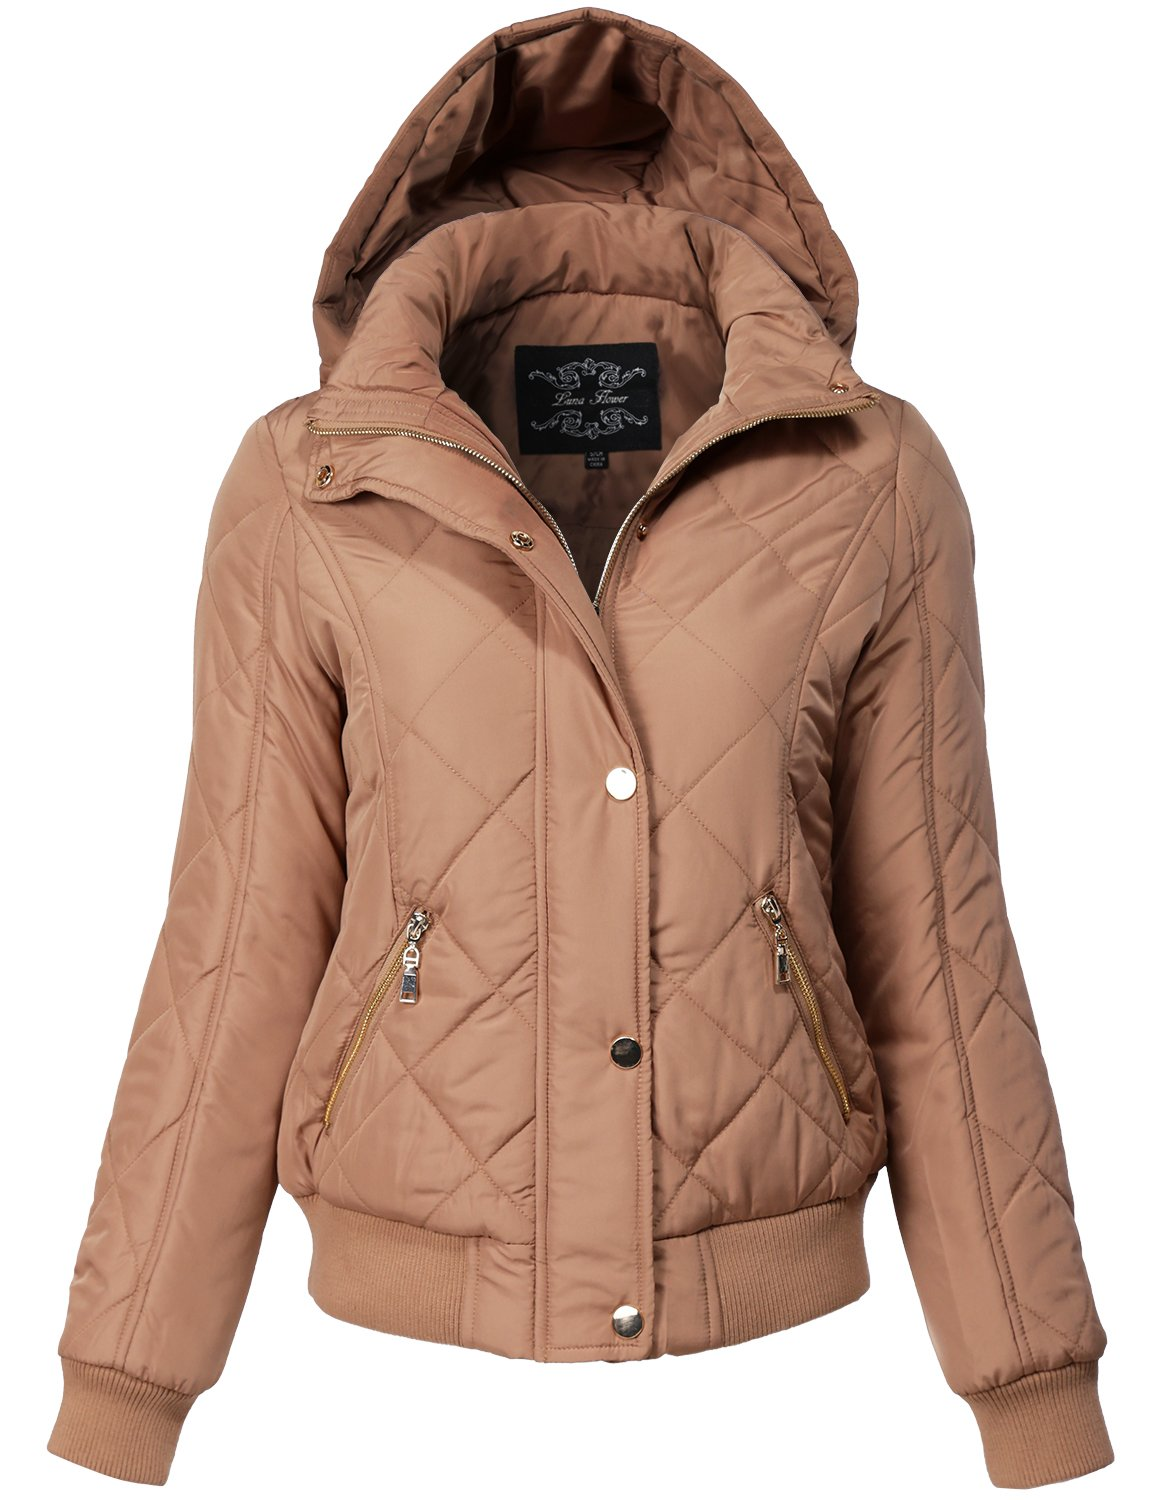 Warm Regular Fit Quilted Padding Bomber Jackets, 149-Mocha, Small